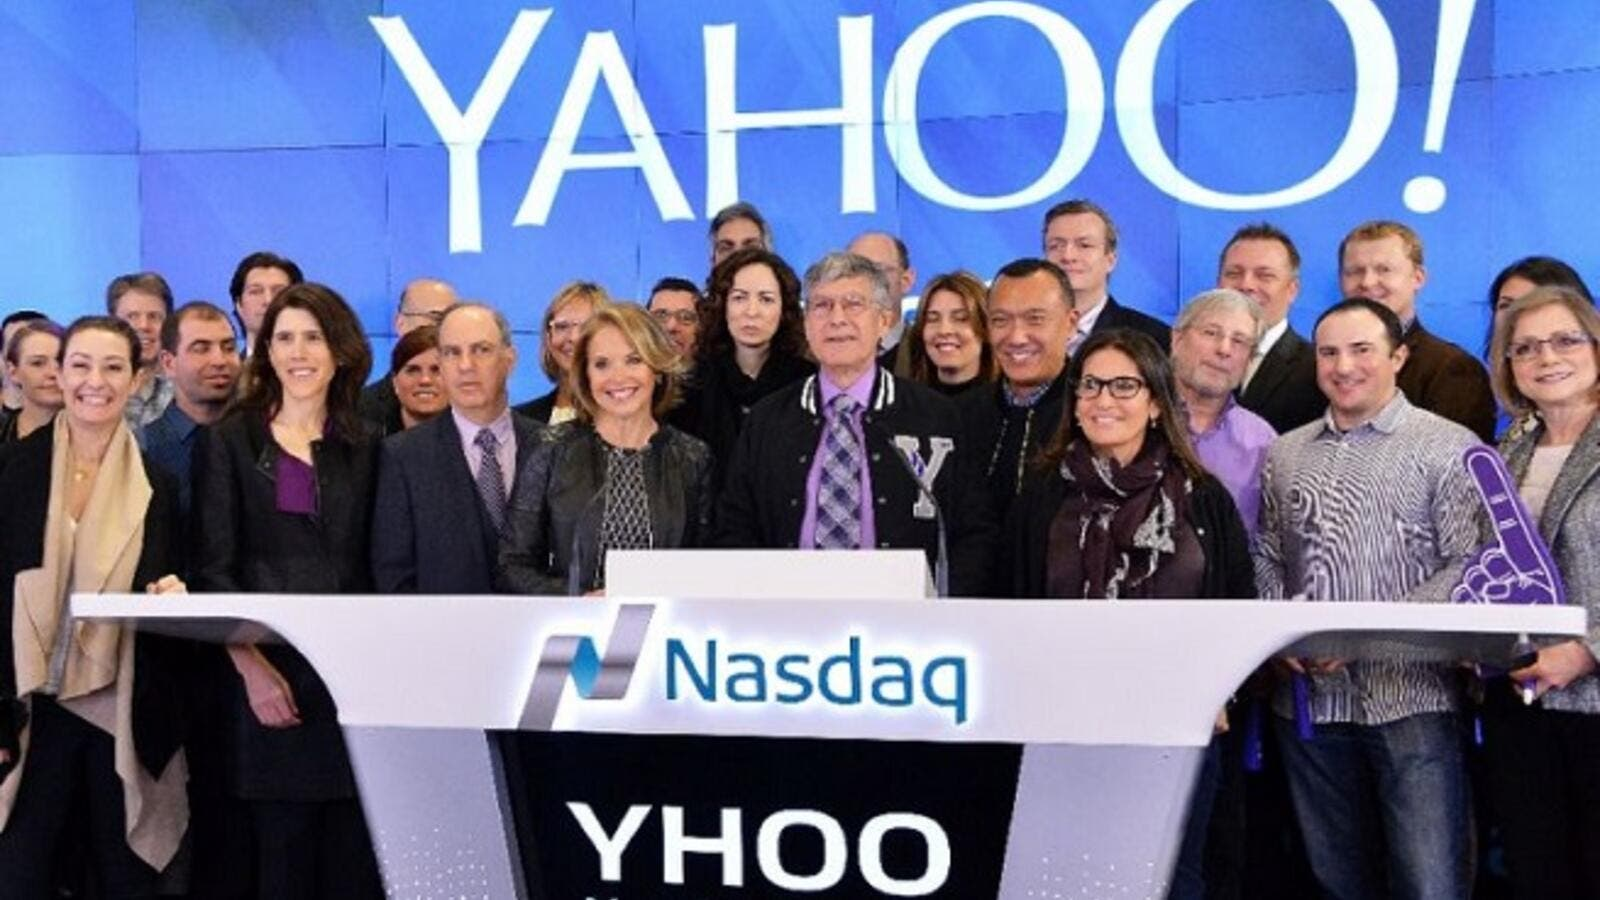 Yahoo employees ring the Opening Bell at NASDAQ MarketSite in New York, on March 2, 2015. (Slaven Vlasic/ AFP)